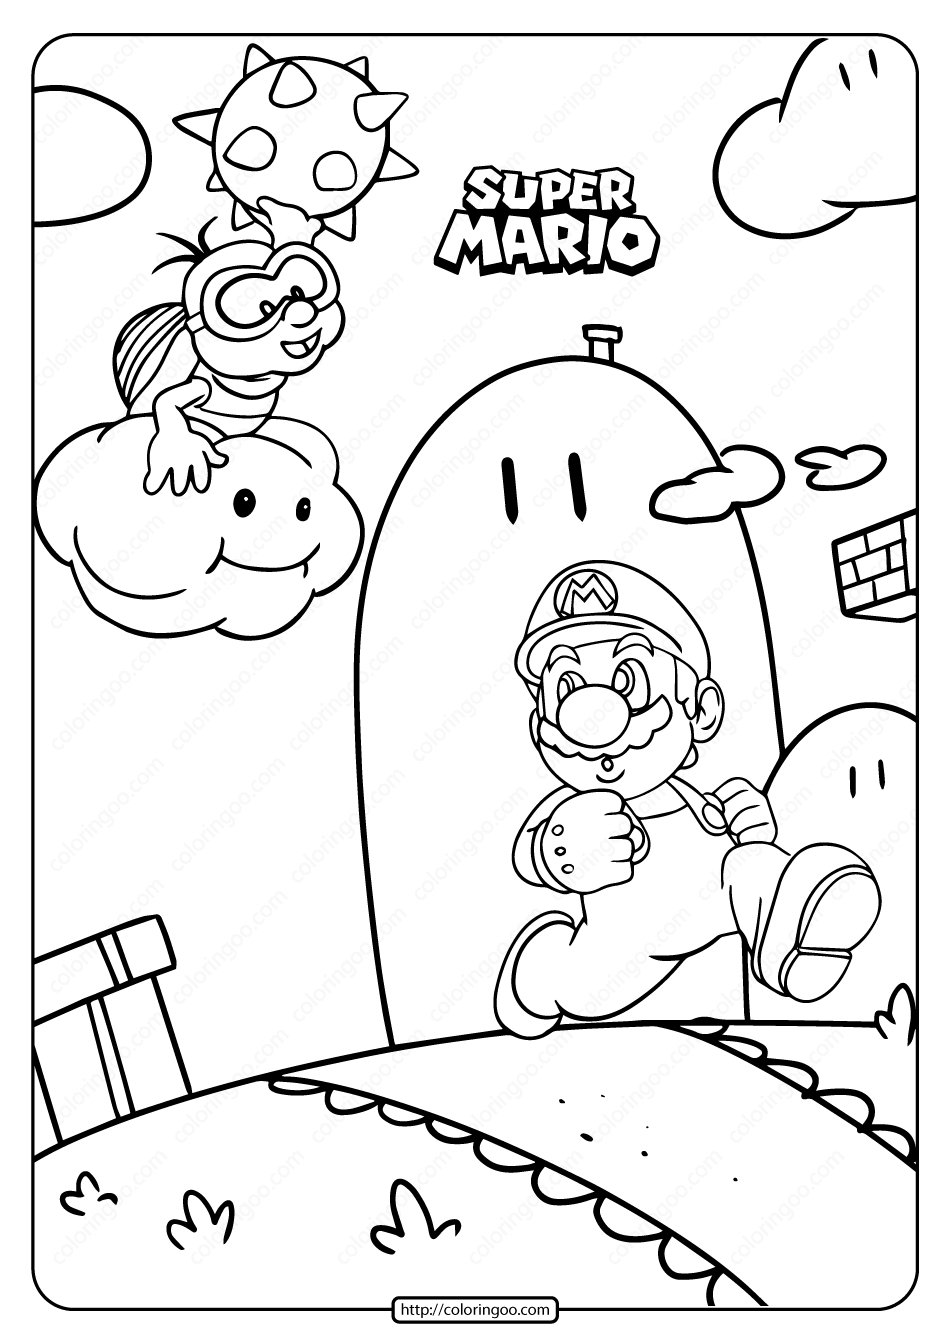 Free Printable Super Mario Game Coloring Page Mario Coloring Pages Super Mario Coloring Pages Coloring Pages